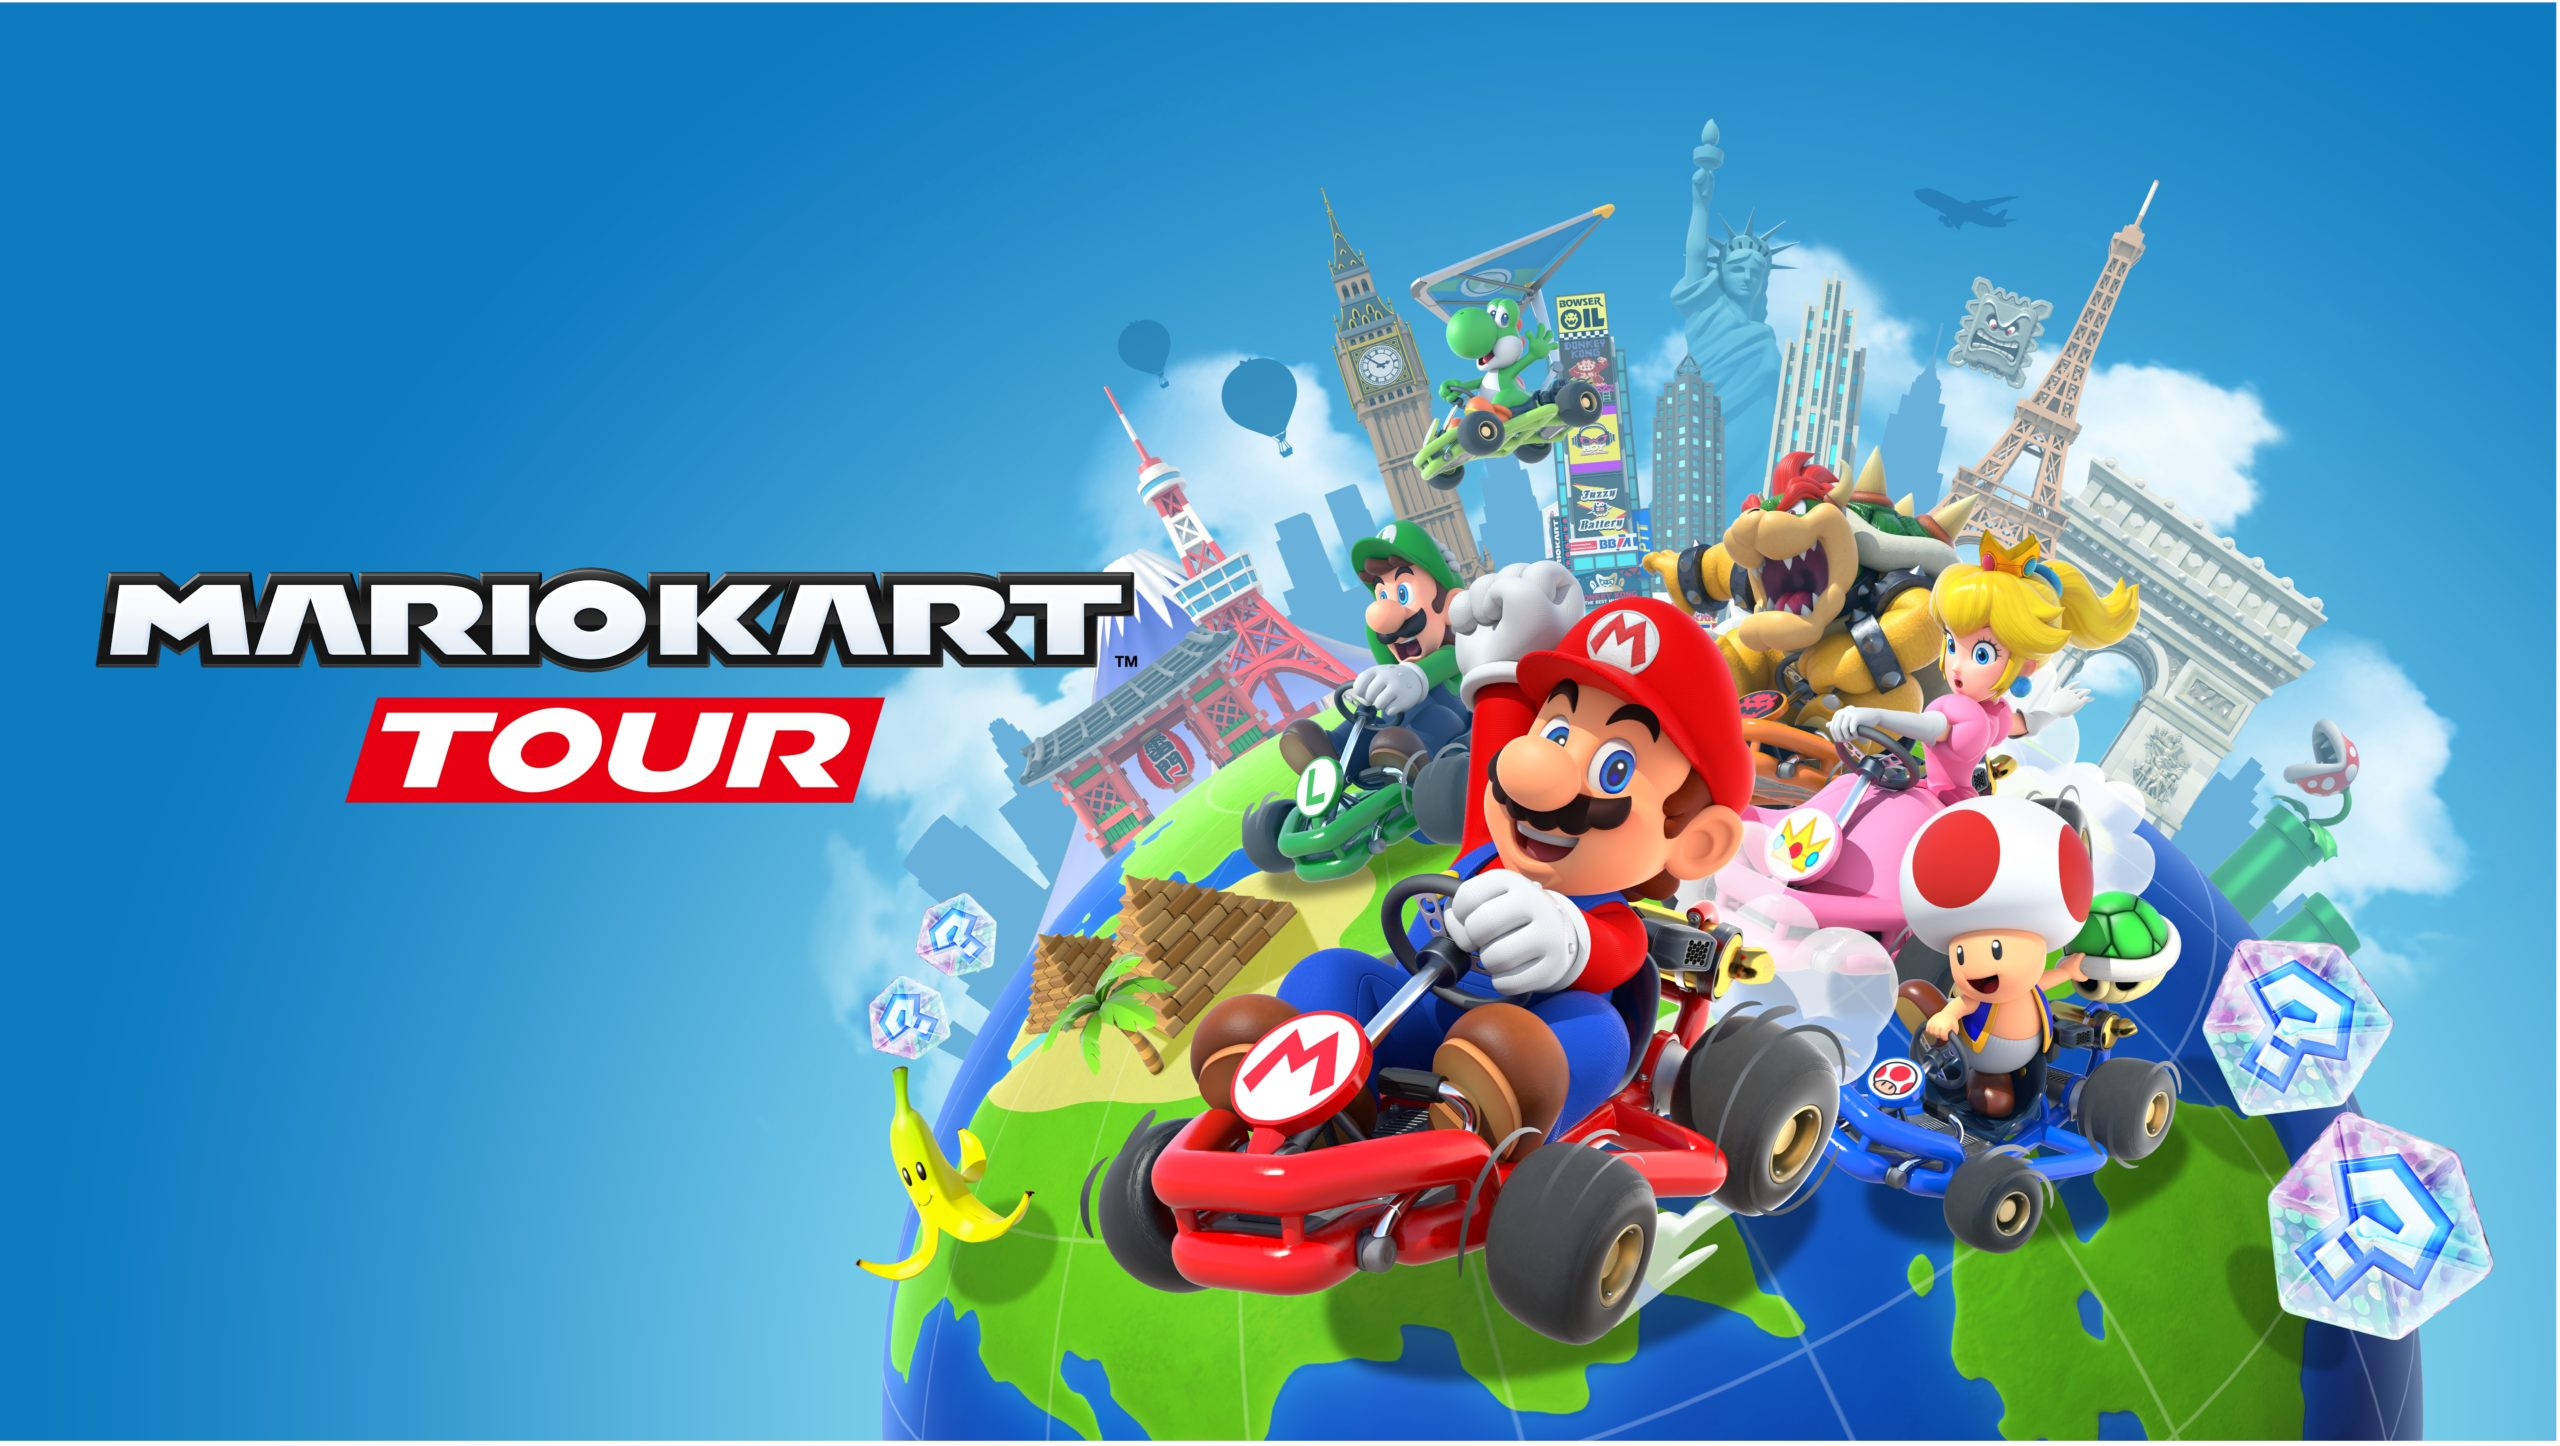 Mario Kart Tour Release Date Announced